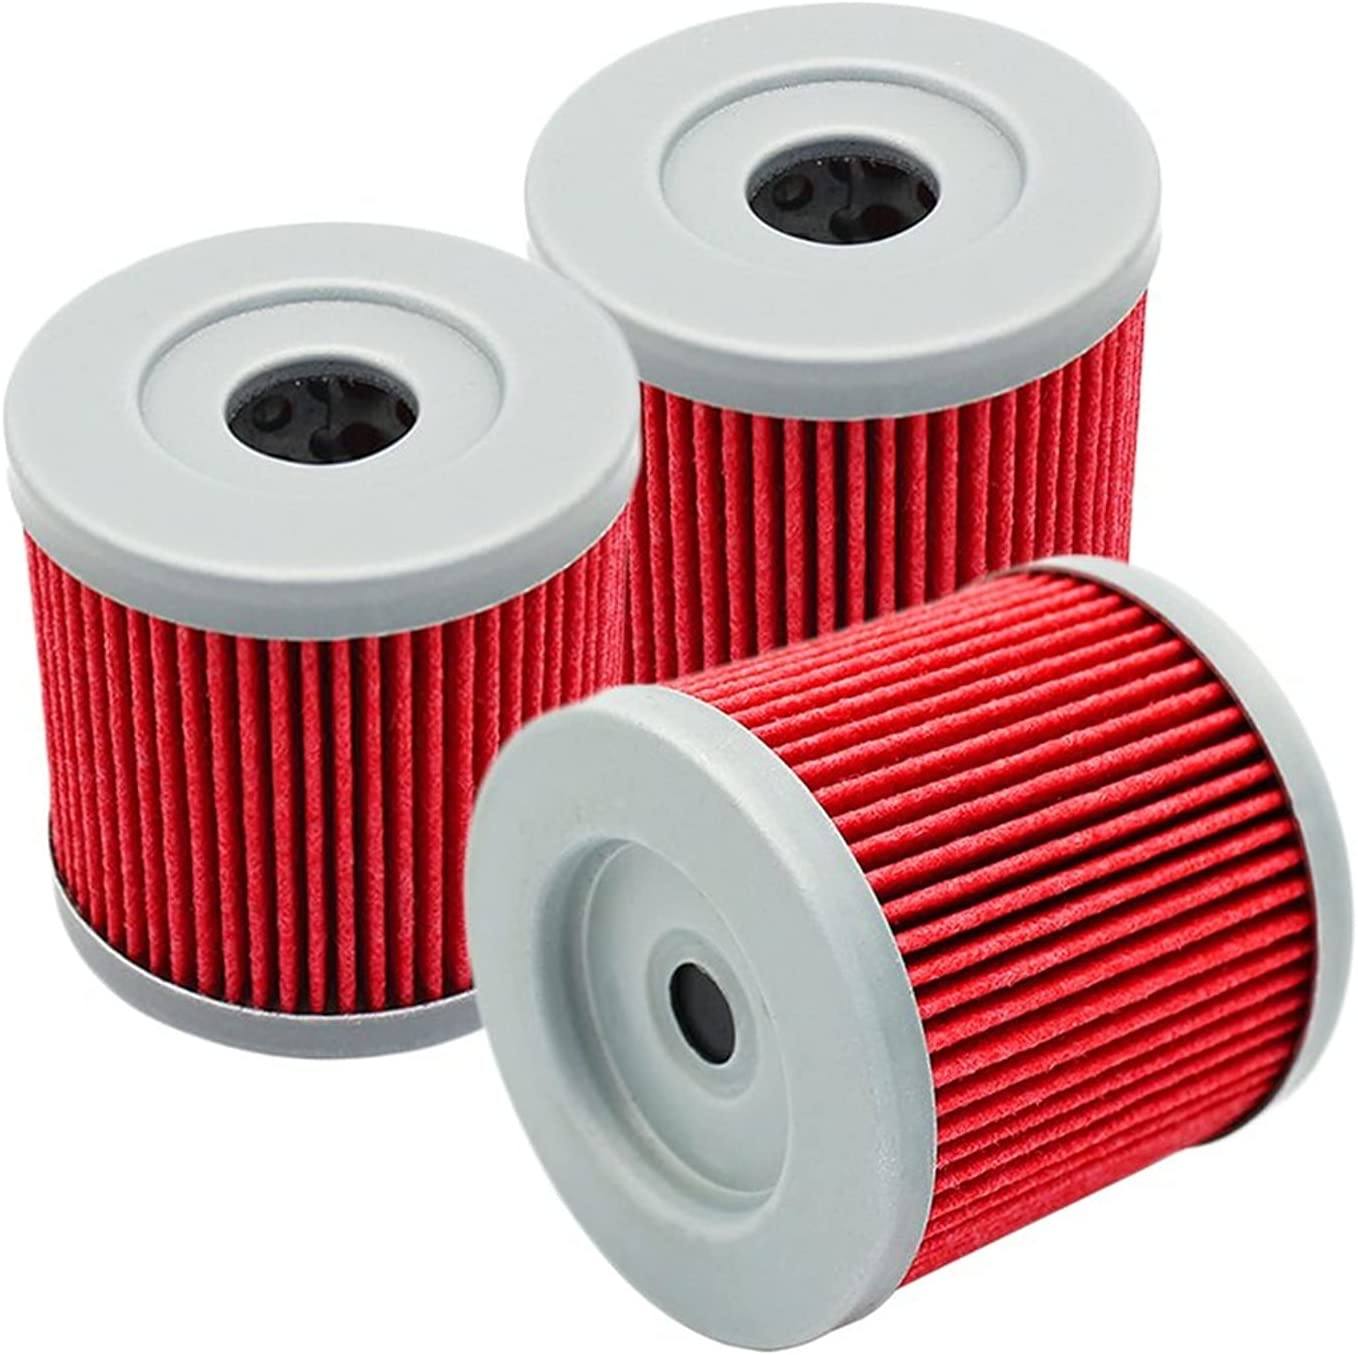 Motorcycle Engine Oil Filter Low price Outlet SALE 1 Pcs 6 3 for